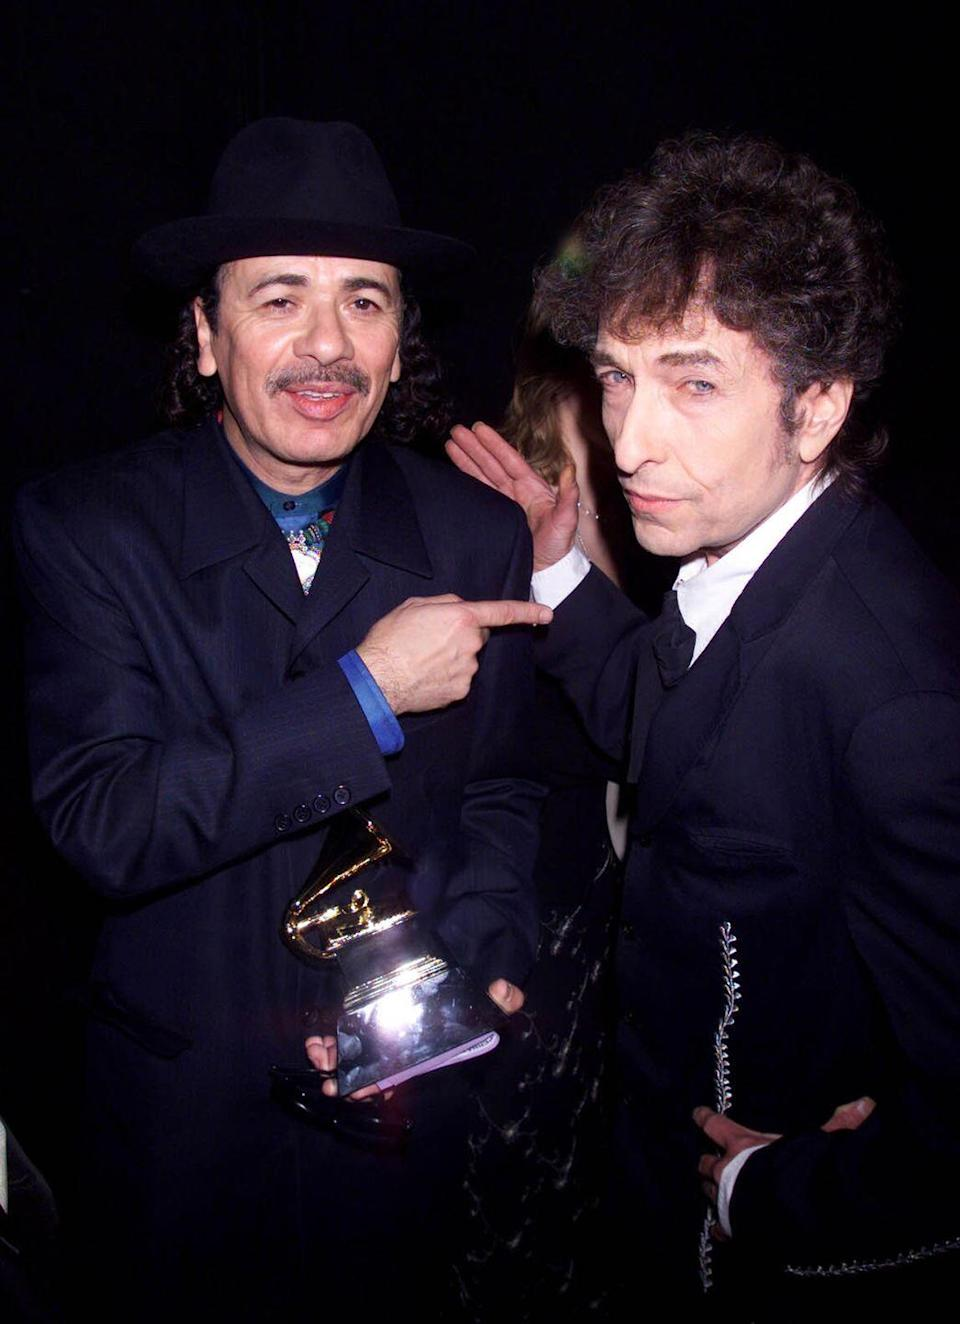 <p>Carlos Santana and Bob Dylan attend the Grammy Awards in Los Angeles on February 24, 2000.</p>